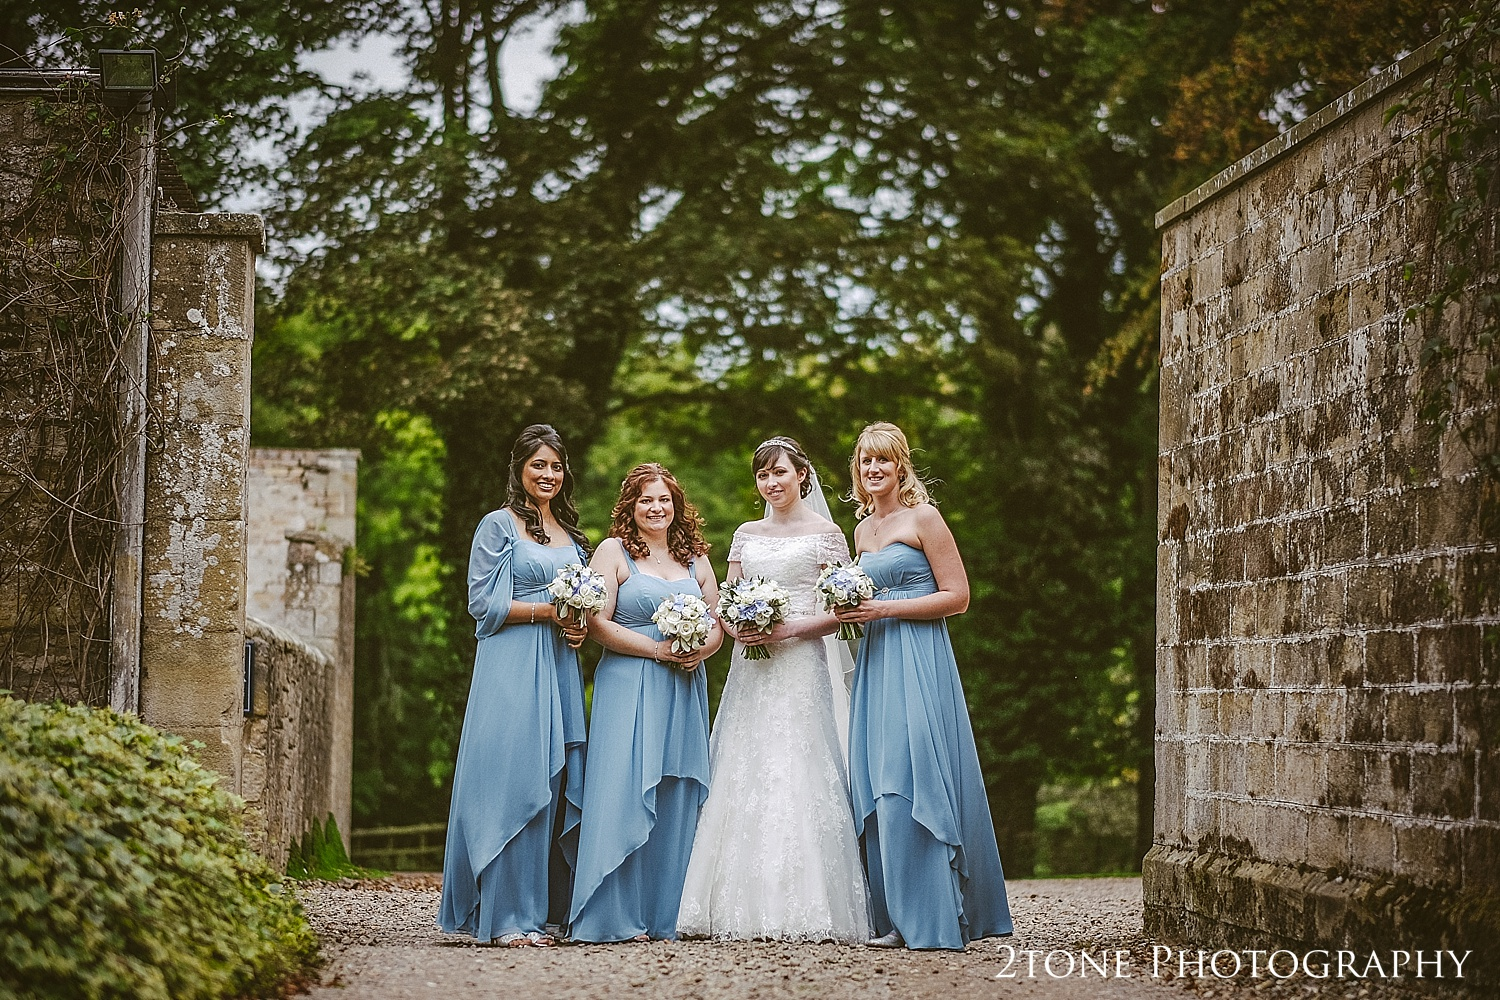 Together we make use of the wonderful grounds around Eshott Hall for photographs